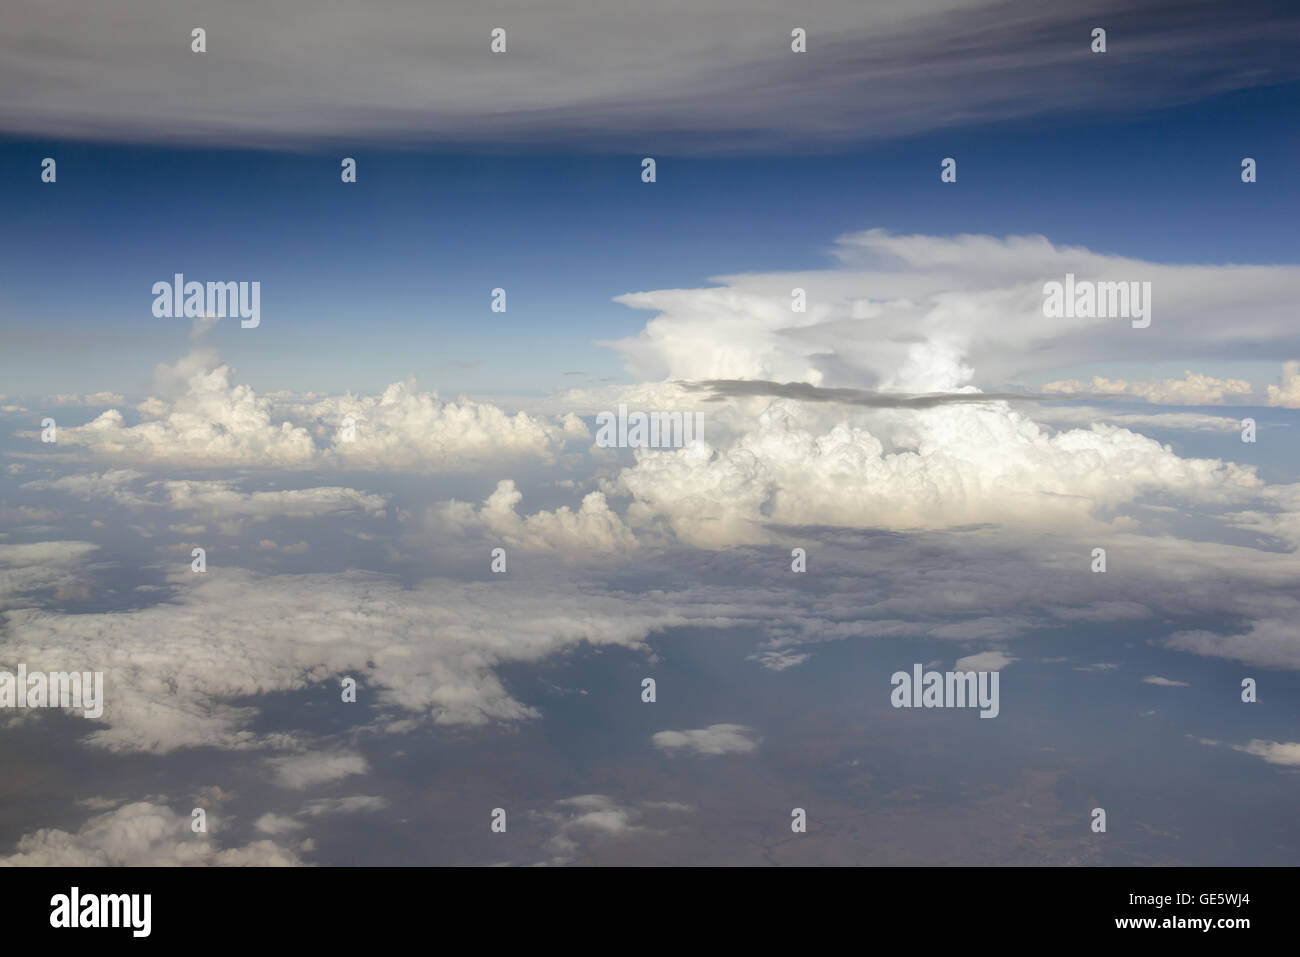 Sky background with cloudy scene (Summer day sky) for graphic usage - Stock Image